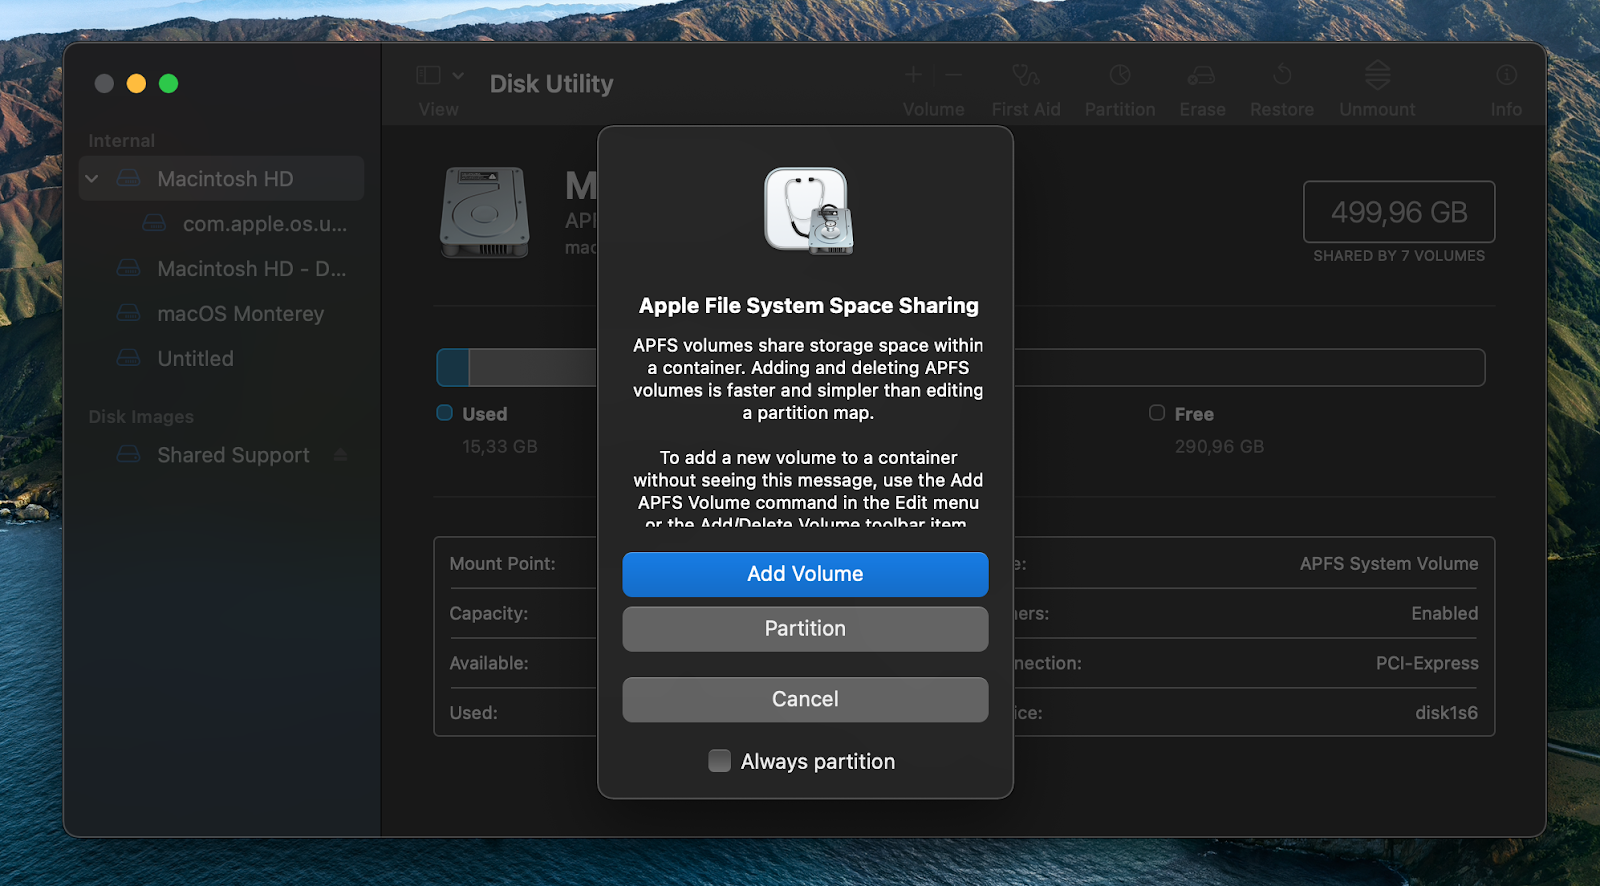 Add volume to Apple File System Space